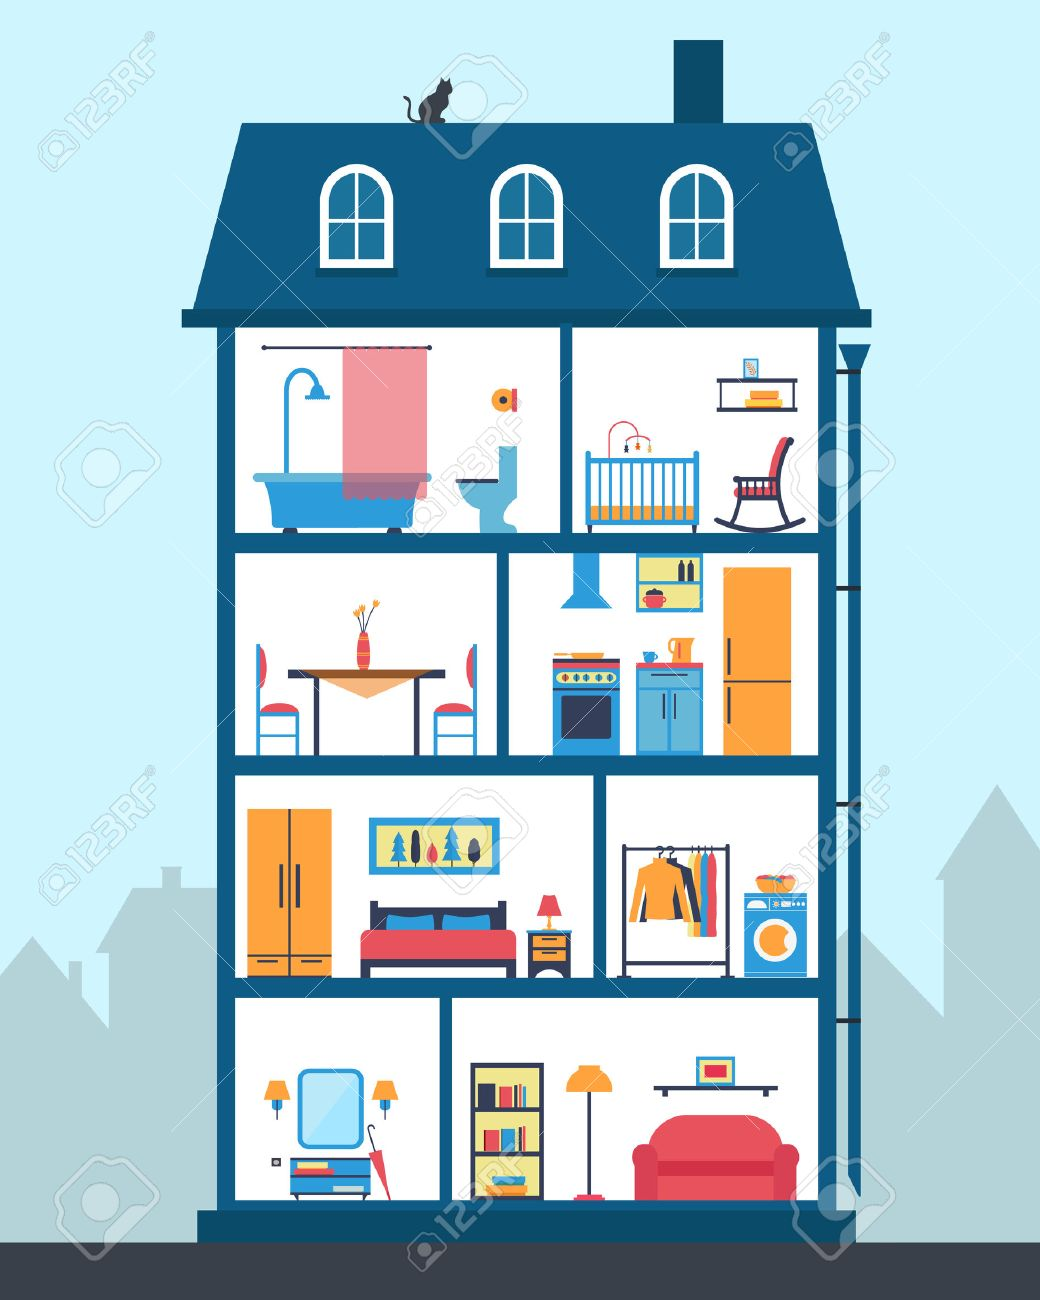 House In Cut. Detailed Modern House Interior. Rooms With Furniture. Flat  Style Vector